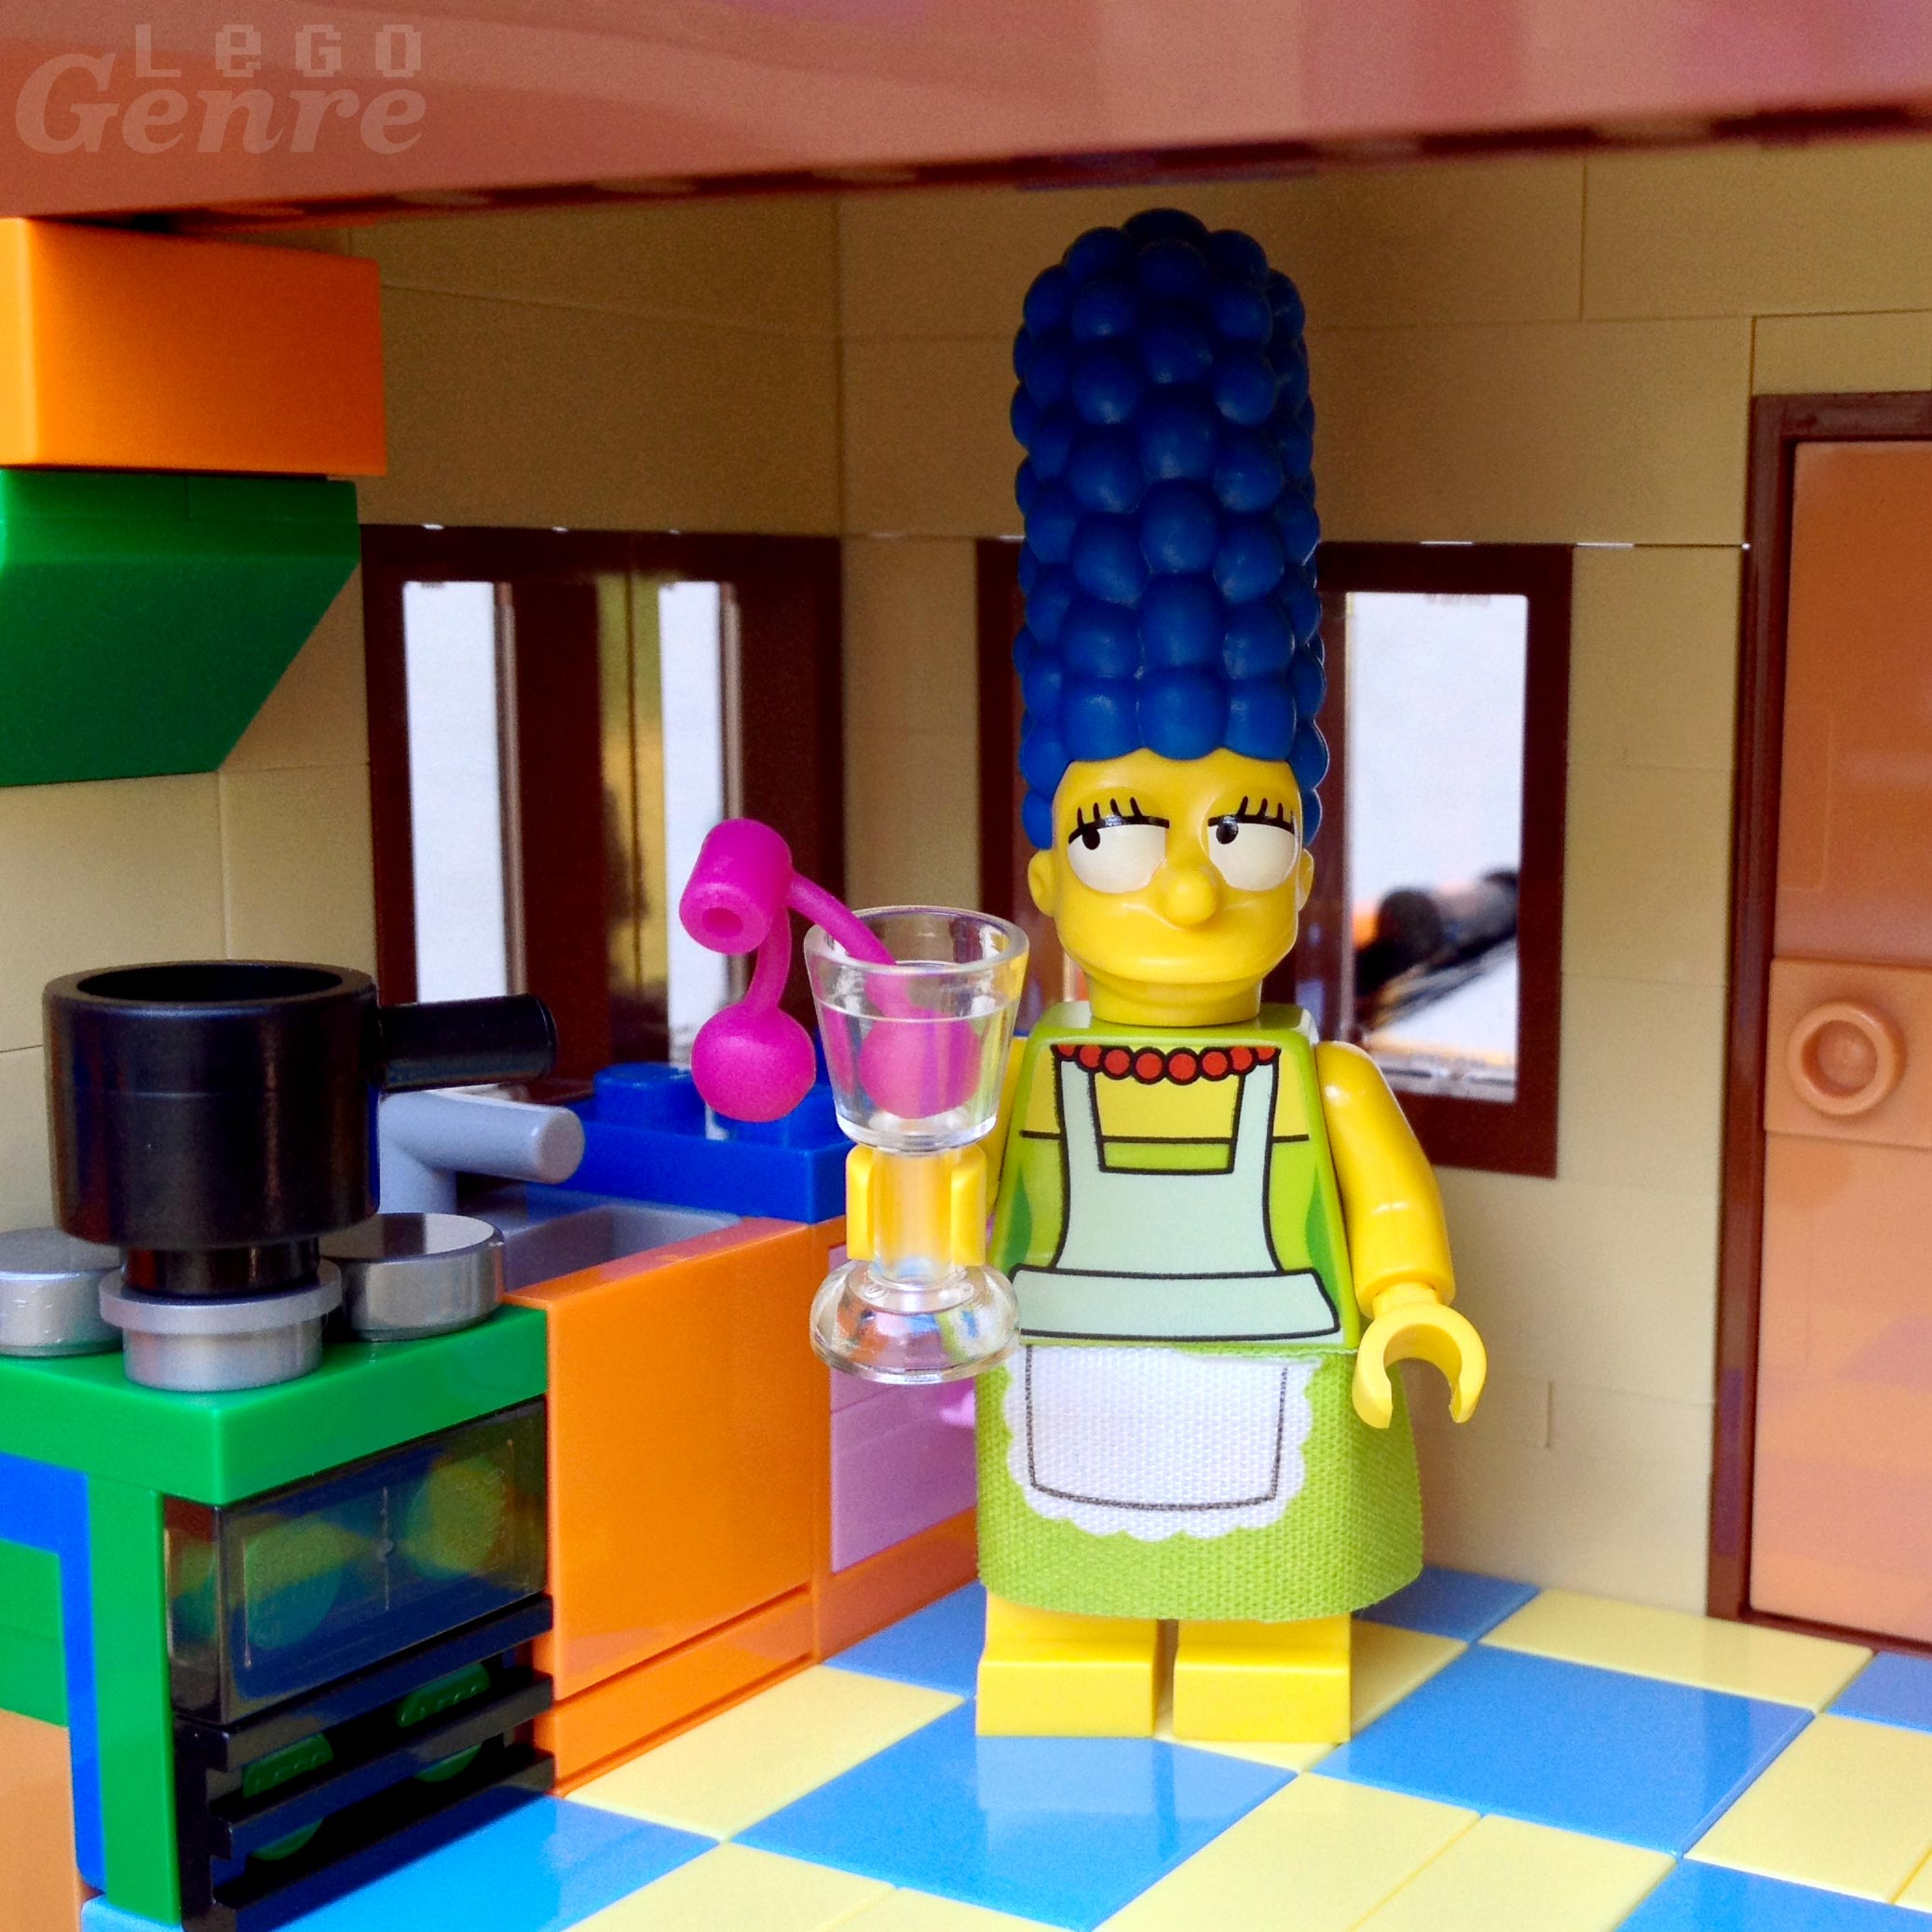 "LegoGenre 00348: ""I'd like to visit that Long Island Place, if only it were real."""